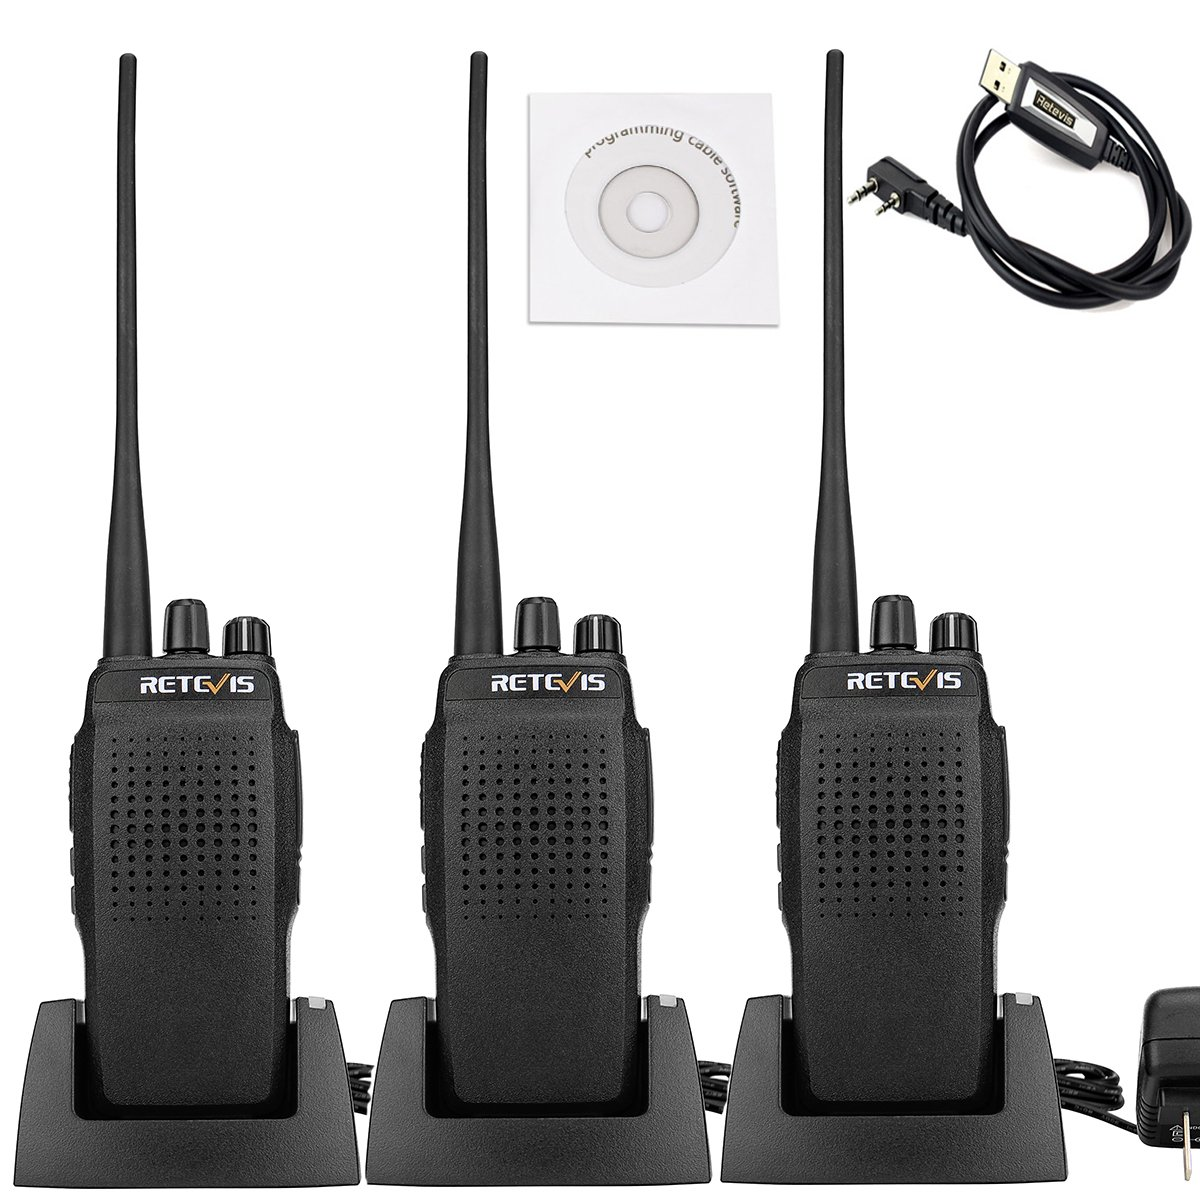 Retevis RT26 10W UHF Two Way Radio 3000 mAh High Power 400-470MHz VOX Scan Walkie Talkies(3 Pack) and Programming Cable